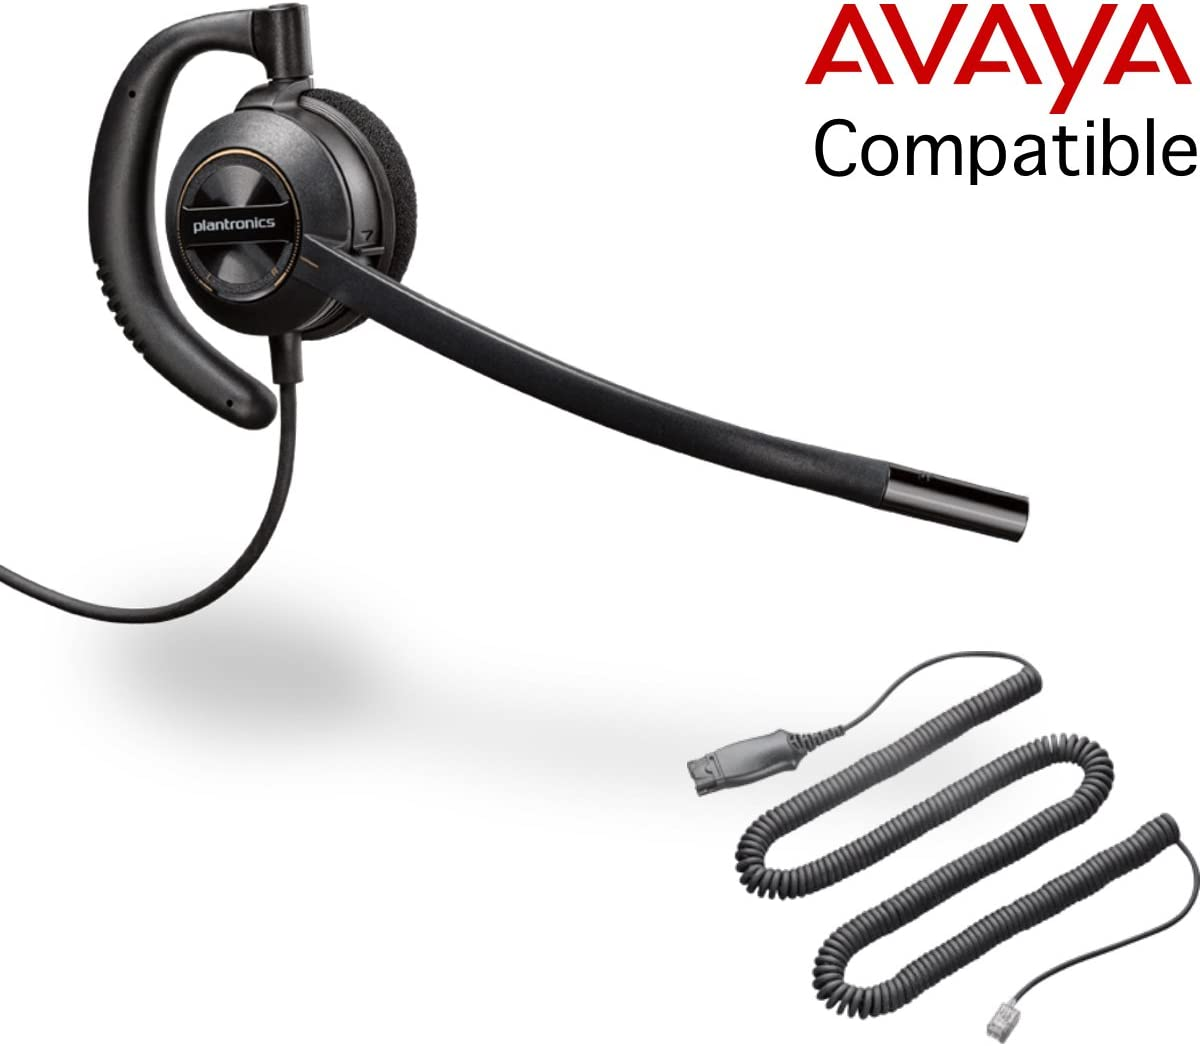 Amazon Com Global Teck Bundle Of Plantronics Hw530 Headset W Mute Button Foavaya Phones Compatible With Avaya 1600 And 9600 Series Ip Phones Office Products